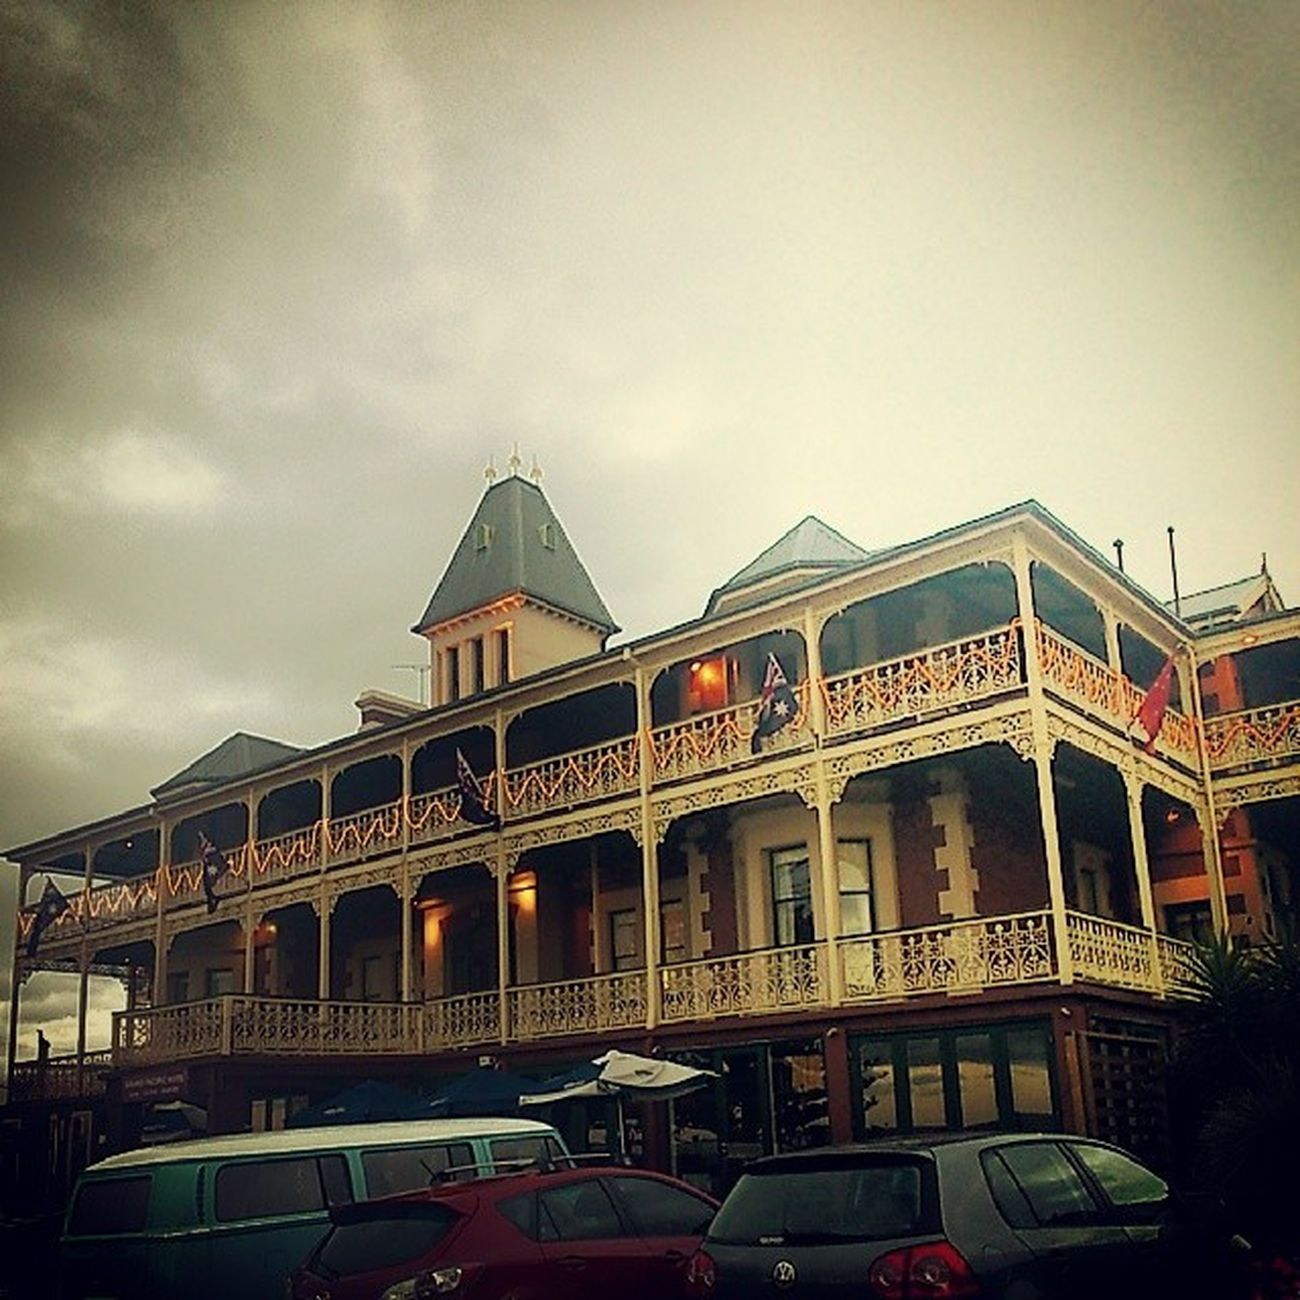 The GrandPacificHotel looks like something straight out of SomewhereInTime !